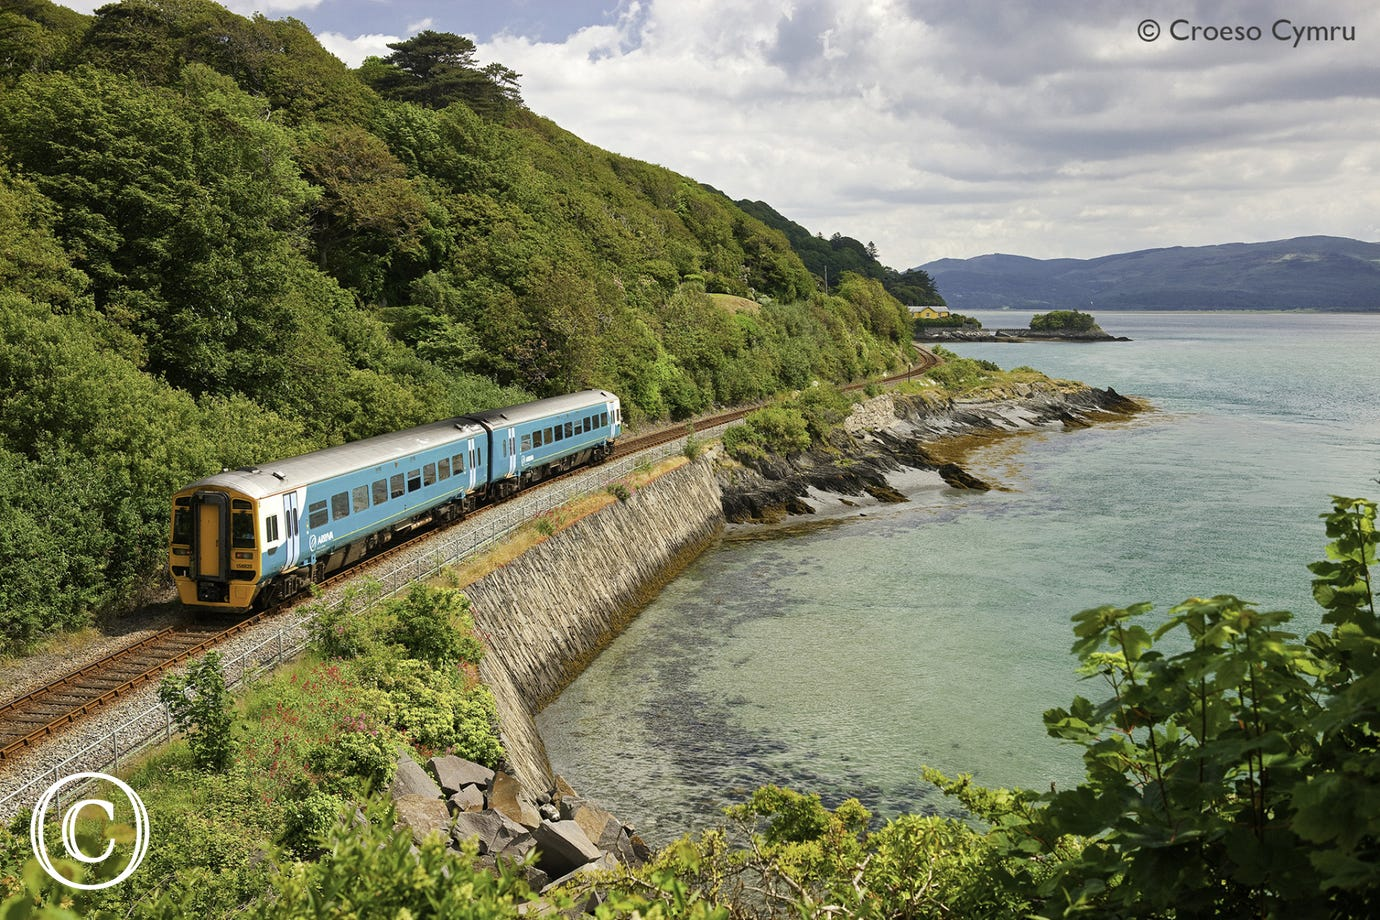 One of the most scenic railways in the world begins in Machynlleth